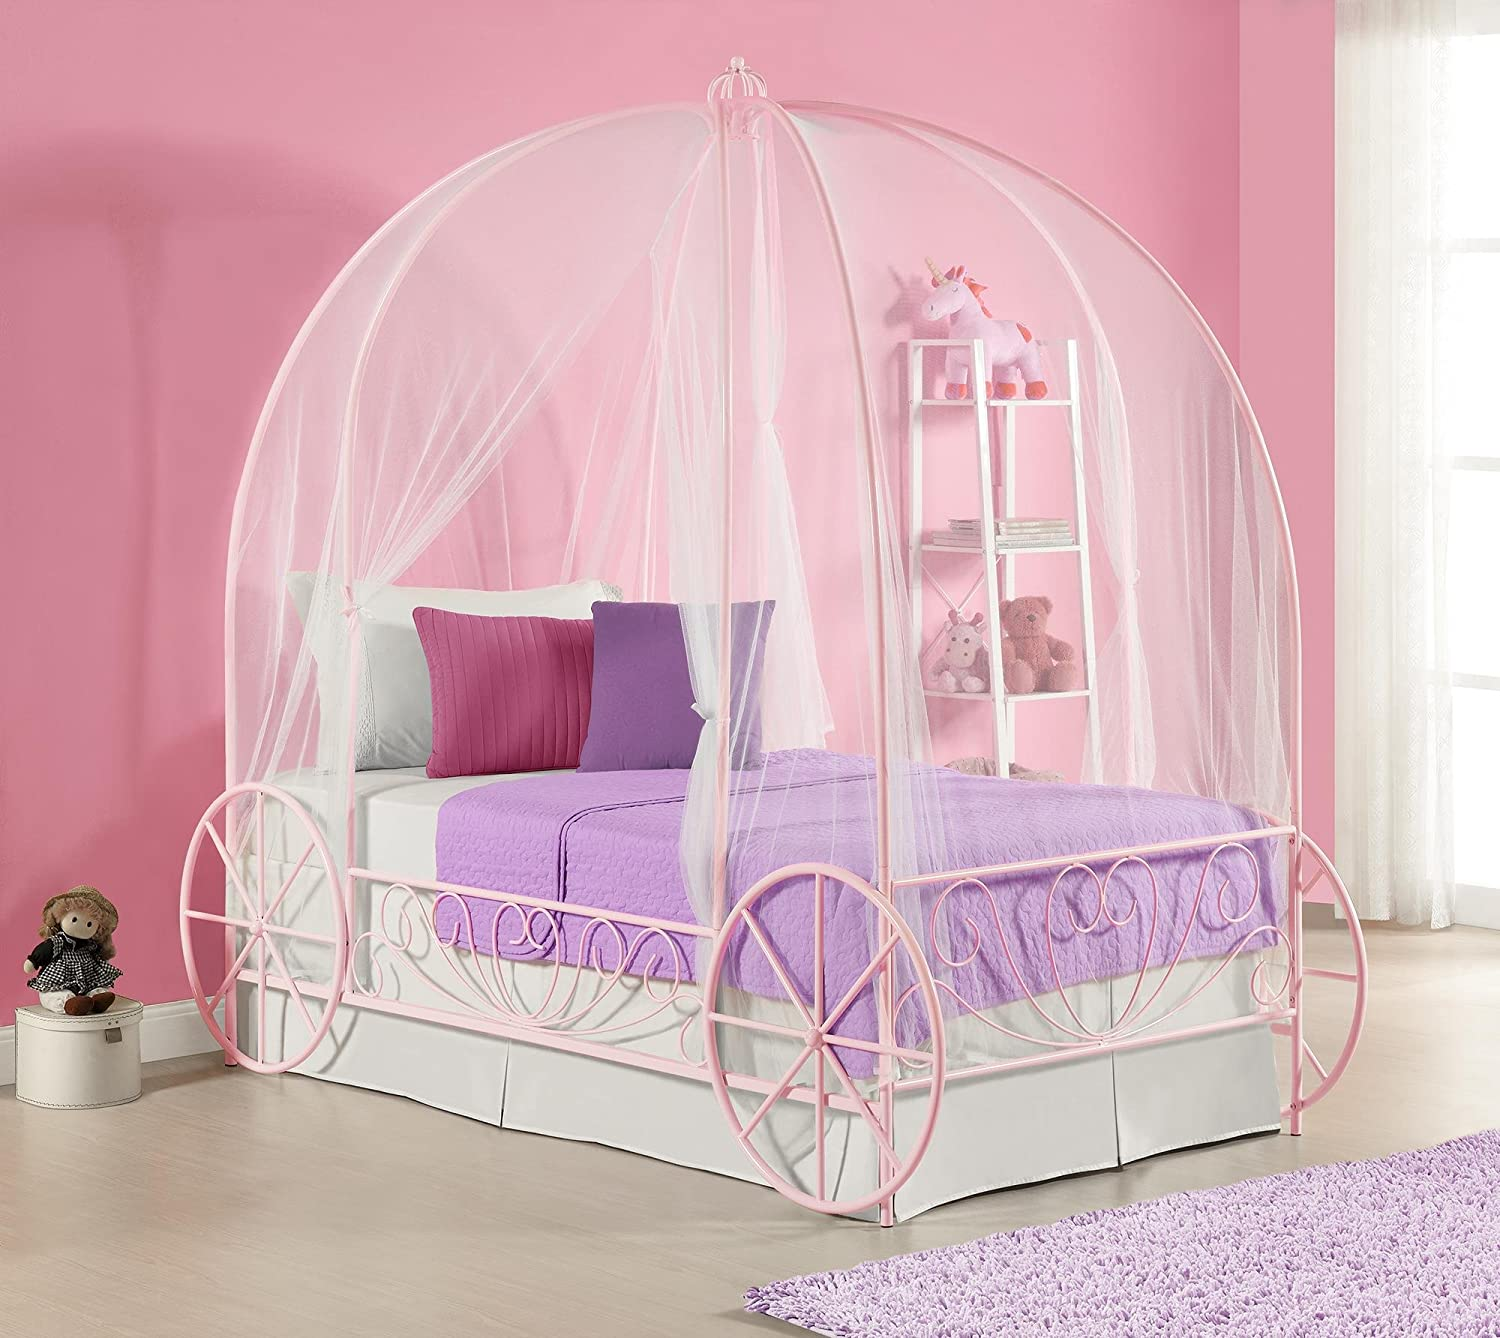 Amazon com  DHP Metal Carriage Bed  Fairy Tale Bed Frame  Shabby Chic  Style  Twin  Pink  Kitchen   Dining. Amazon com  DHP Metal Carriage Bed  Fairy Tale Bed Frame  Shabby